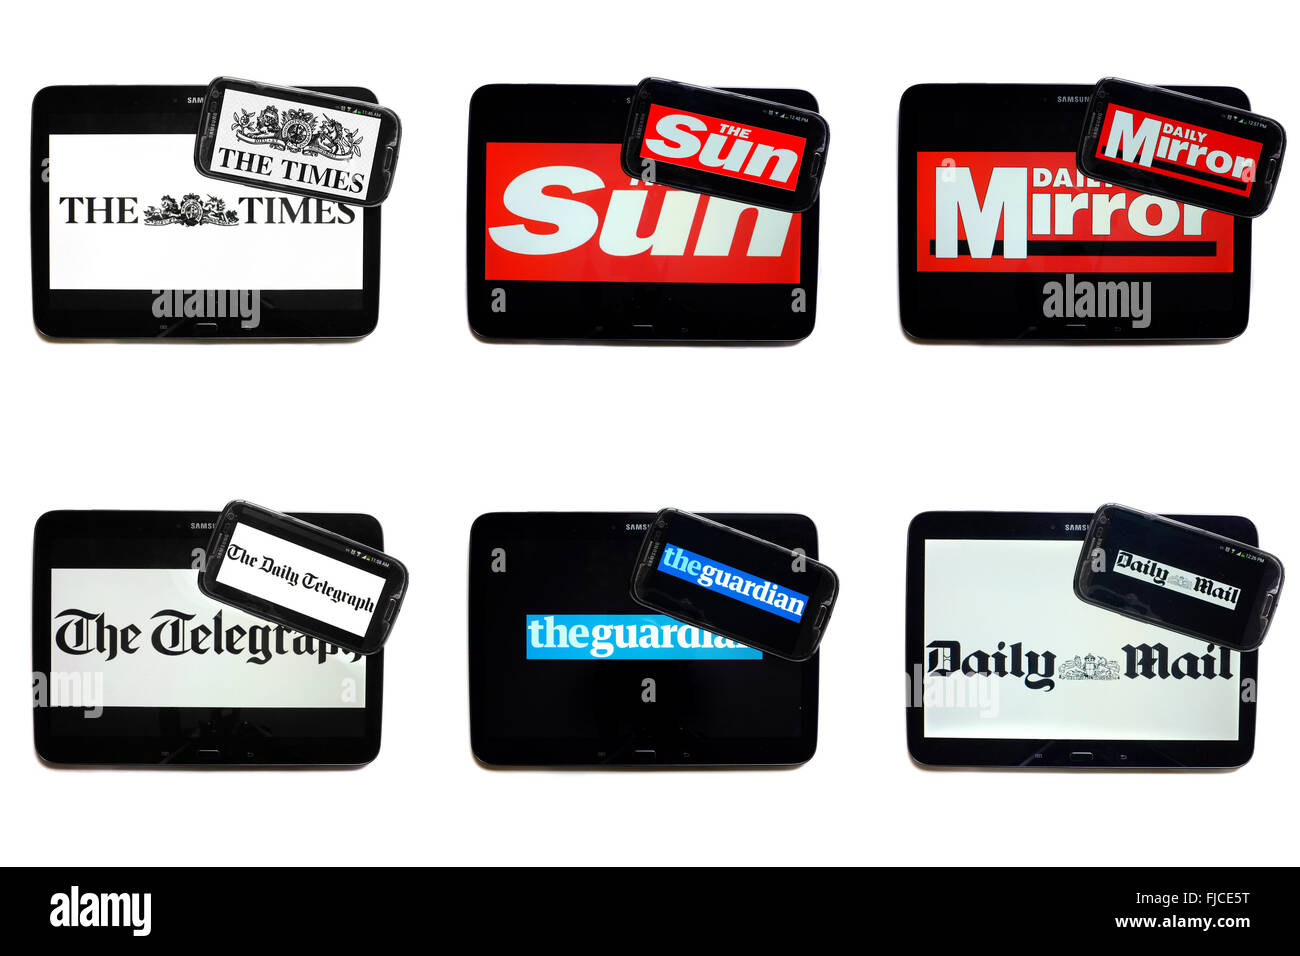 British newspaper logos on tablet and smartphone screens photographed against a white background. Stock Photo